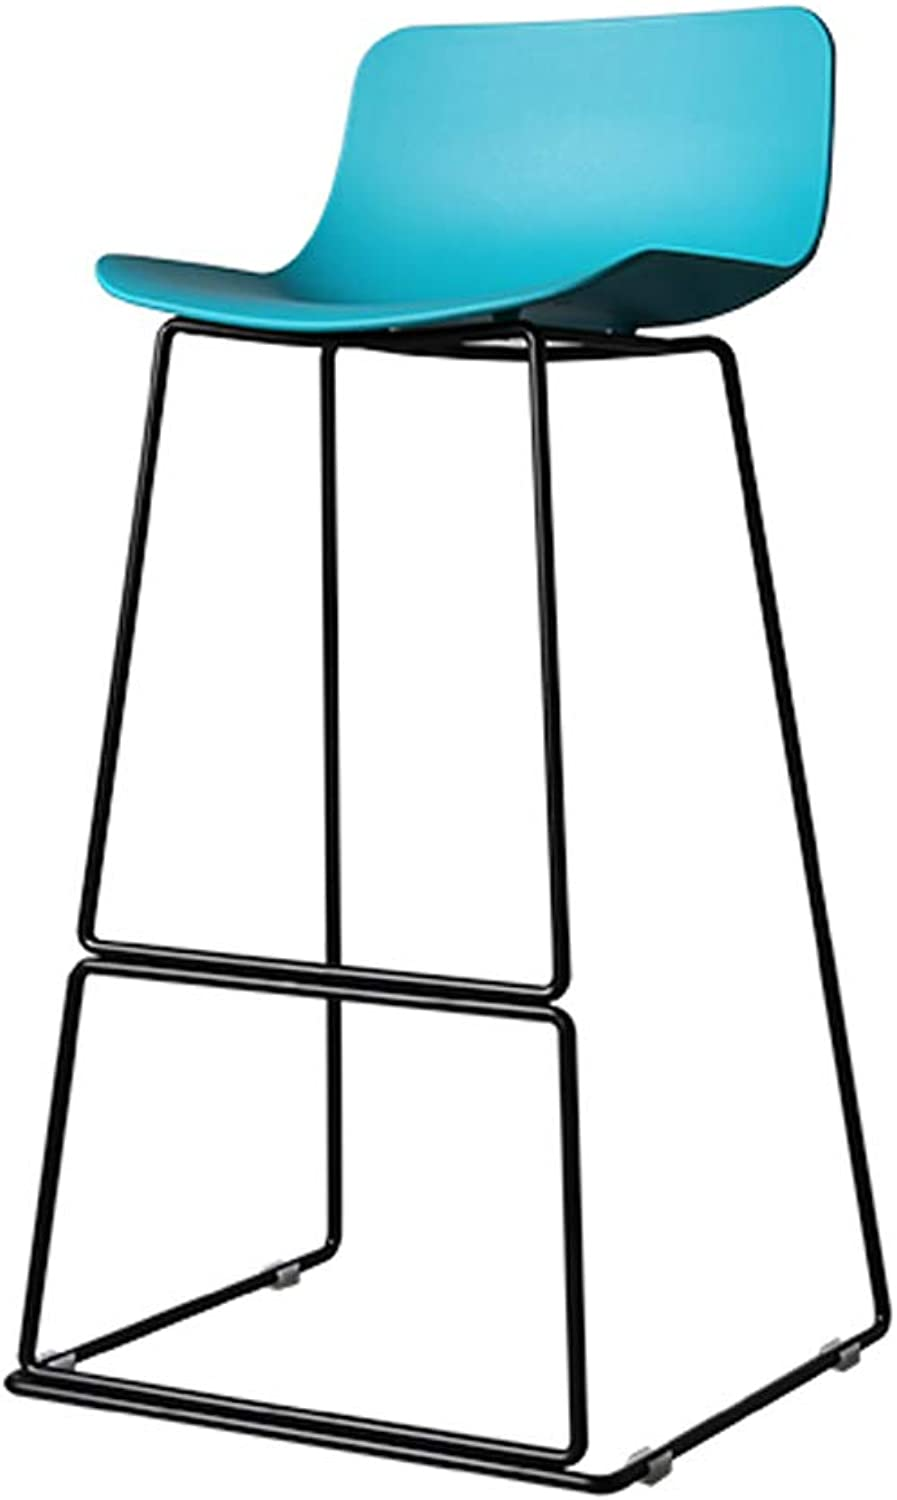 Industrial Style High Stool Iron Art Bar Stool Kitchen Chair Seat Breakfast Chair,Metal Frame PP, for Pub Counter Cafe Kitchen Home